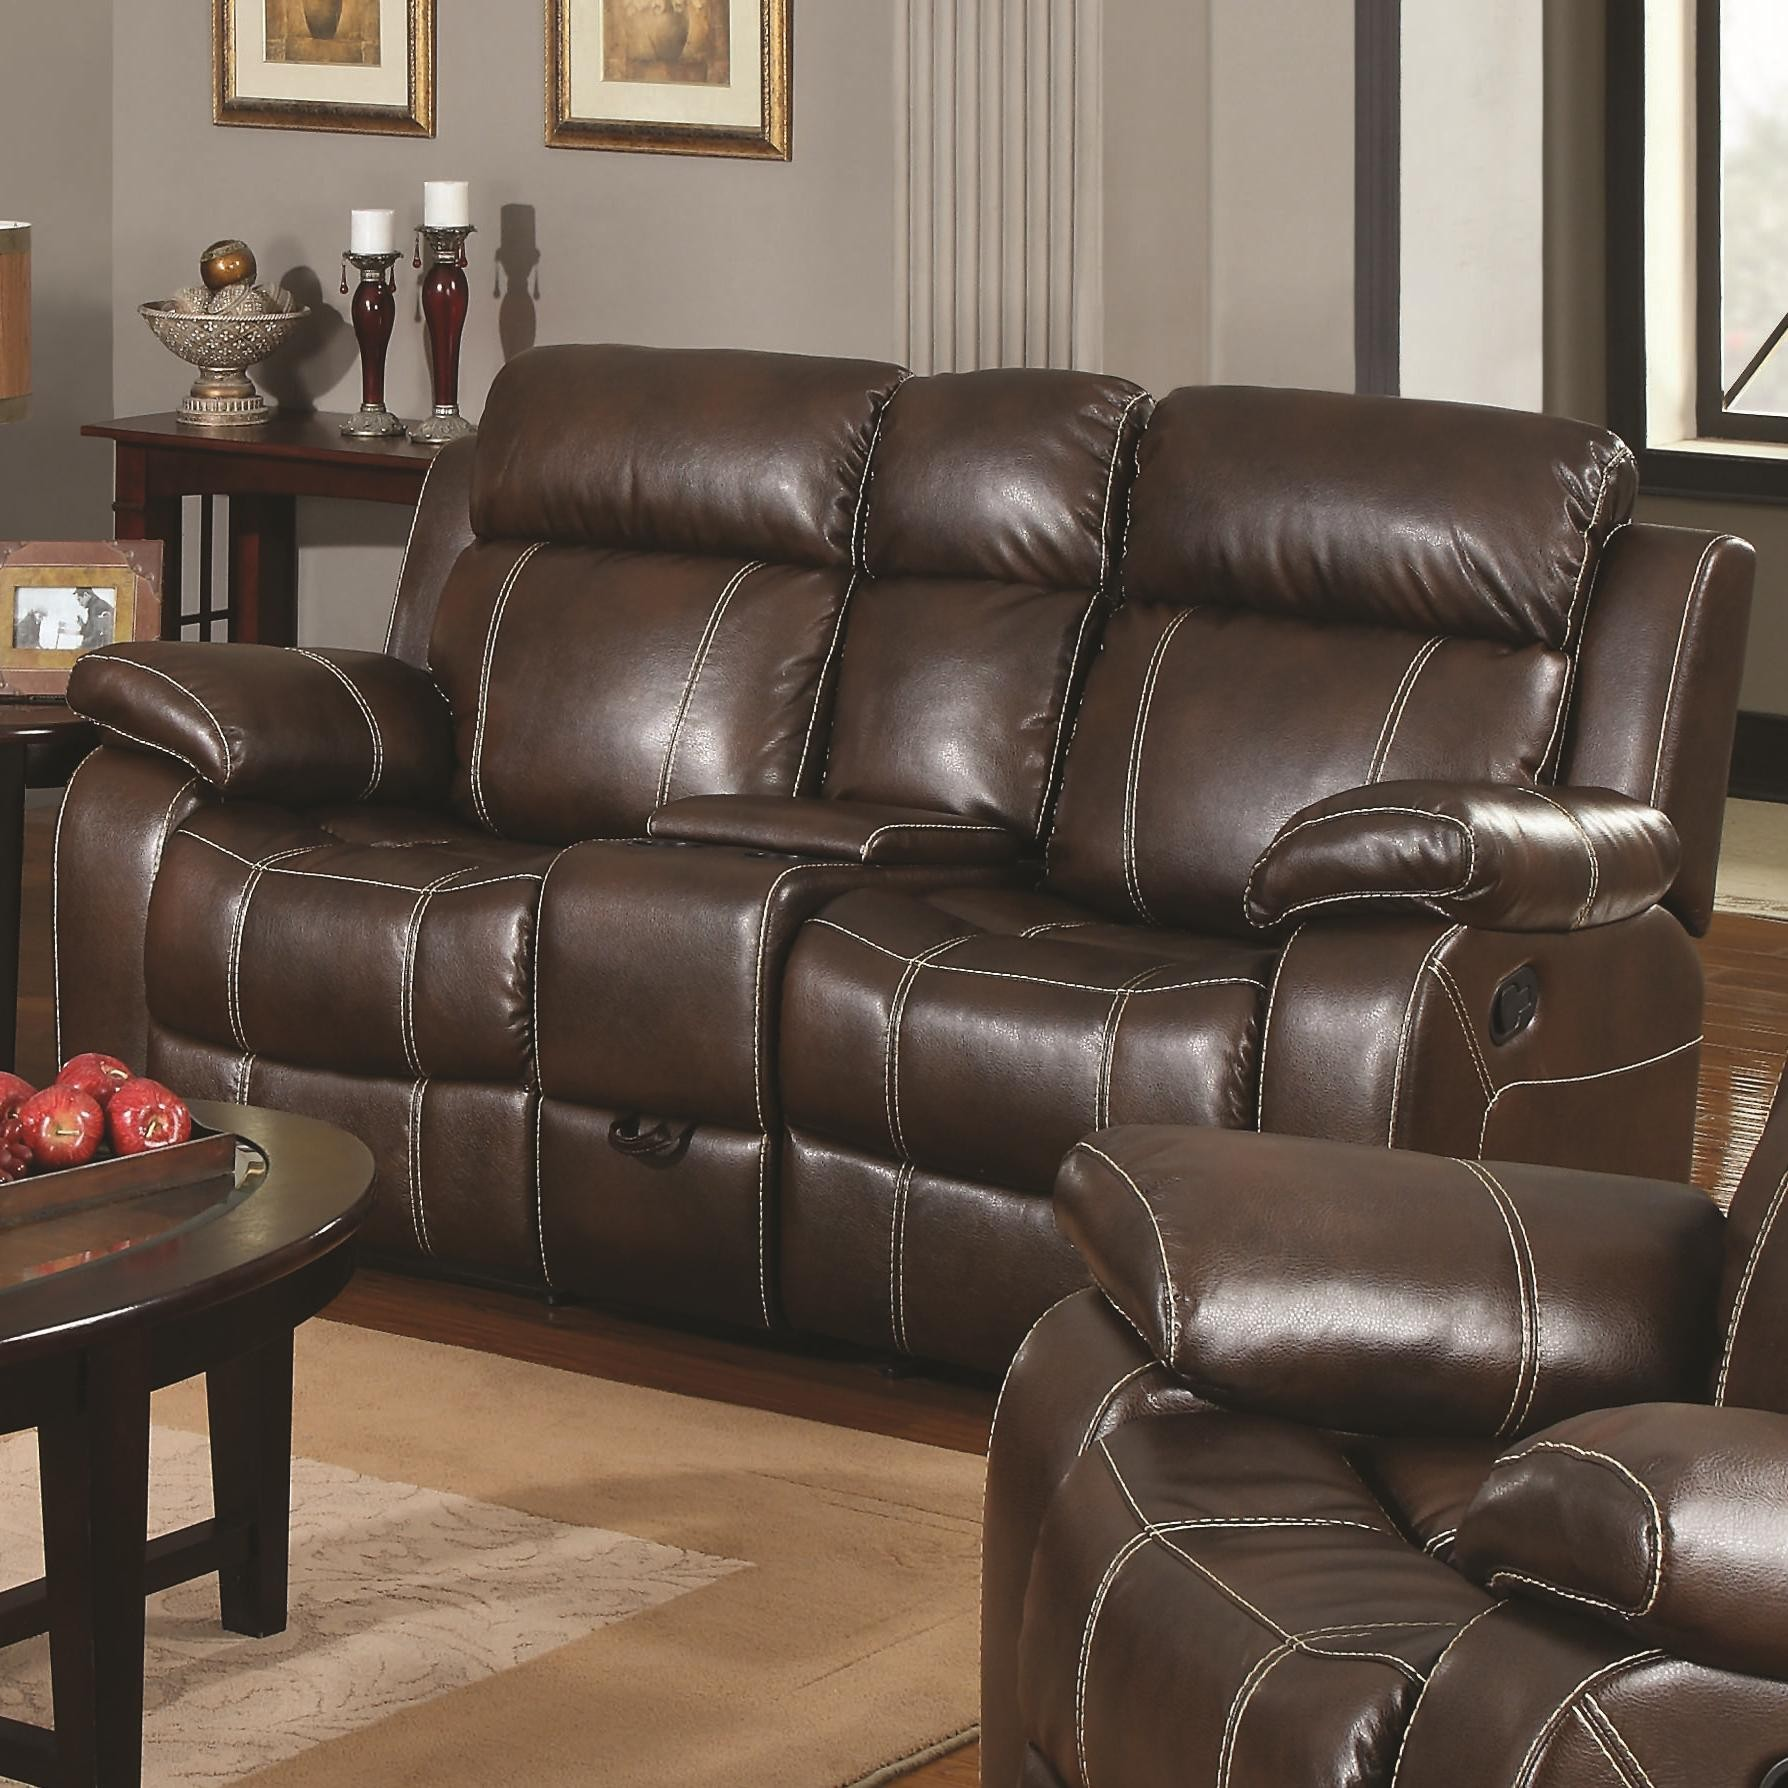 Myleene collection 603021 brown leather reclining sofa loveseat set Leather sofa and loveseat recliner